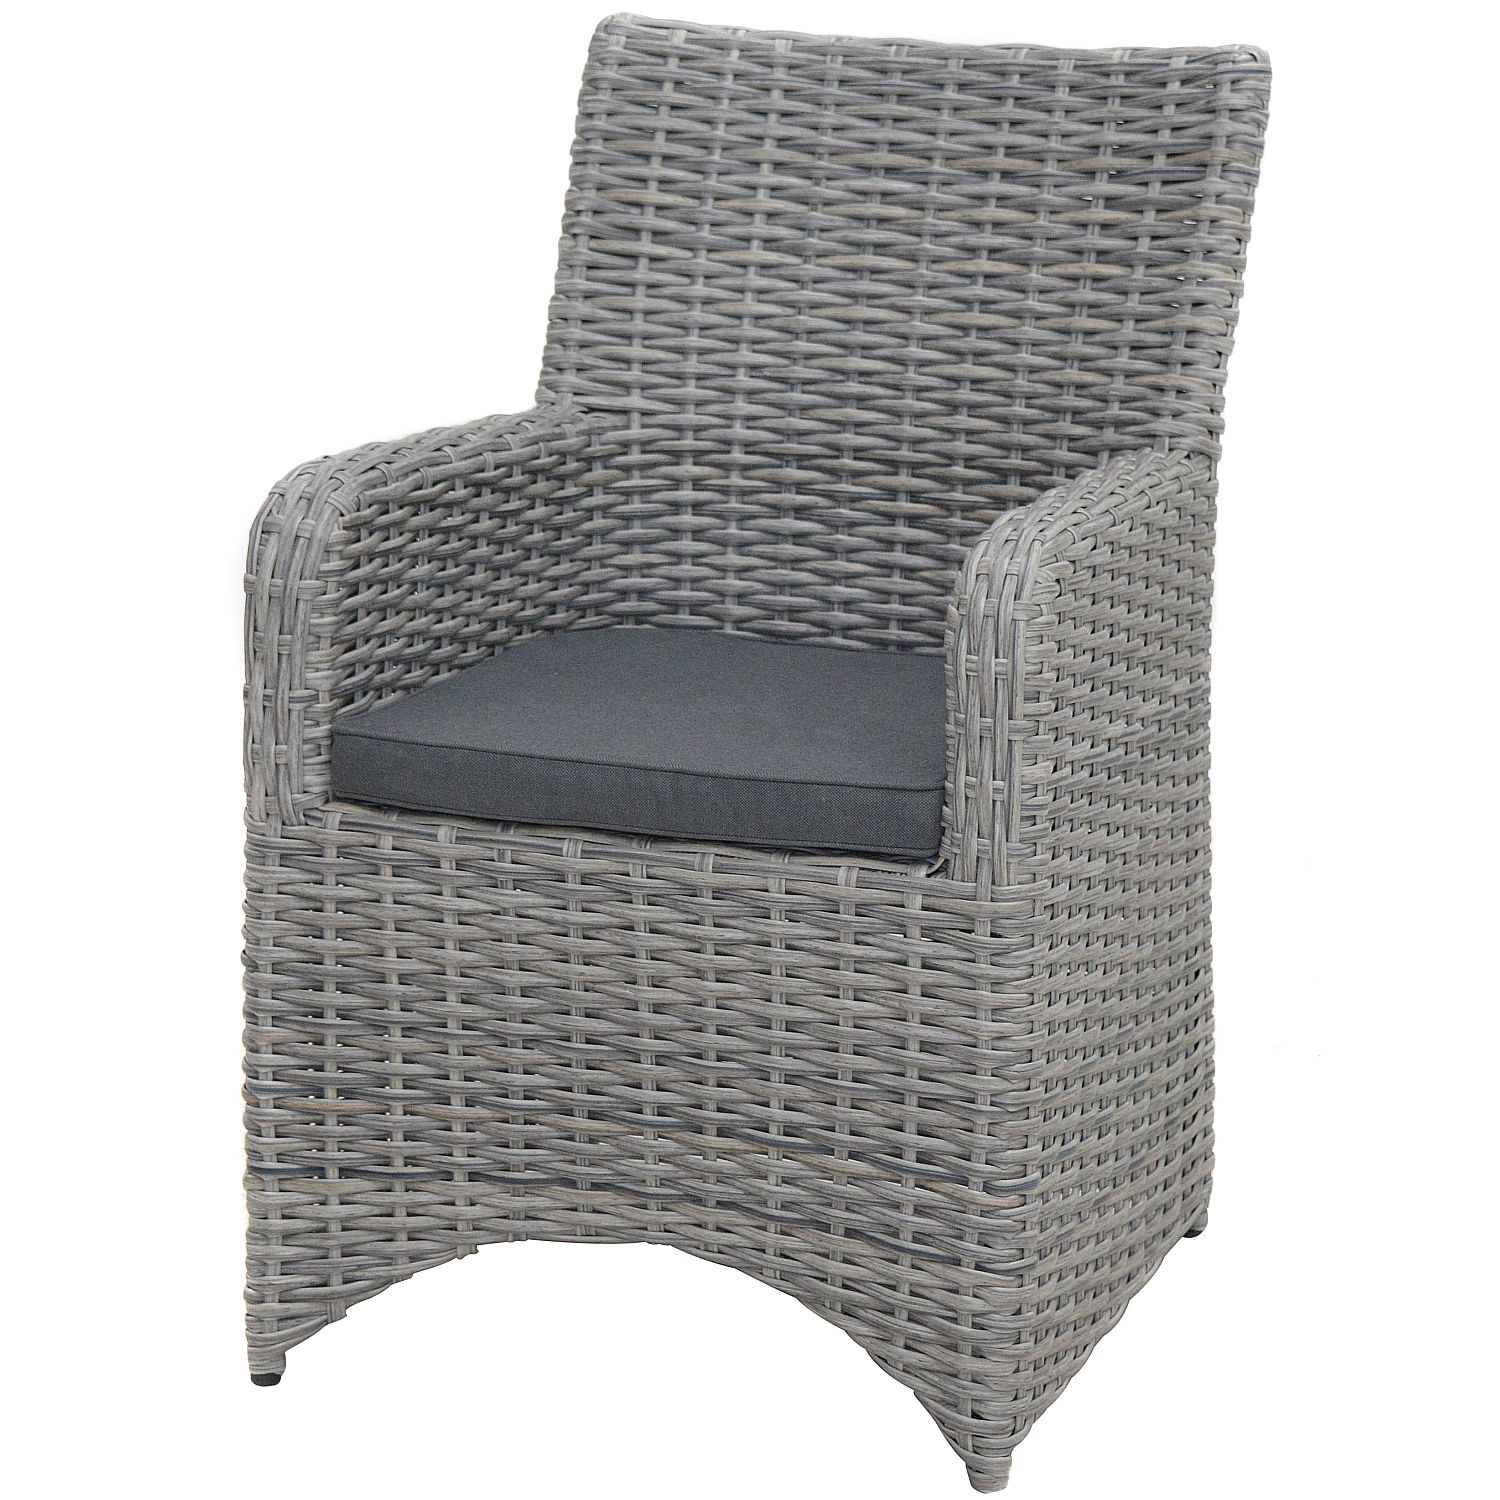 Home 24 - Fauteuil lounge nevis - polyrotin - anthracite, ploß